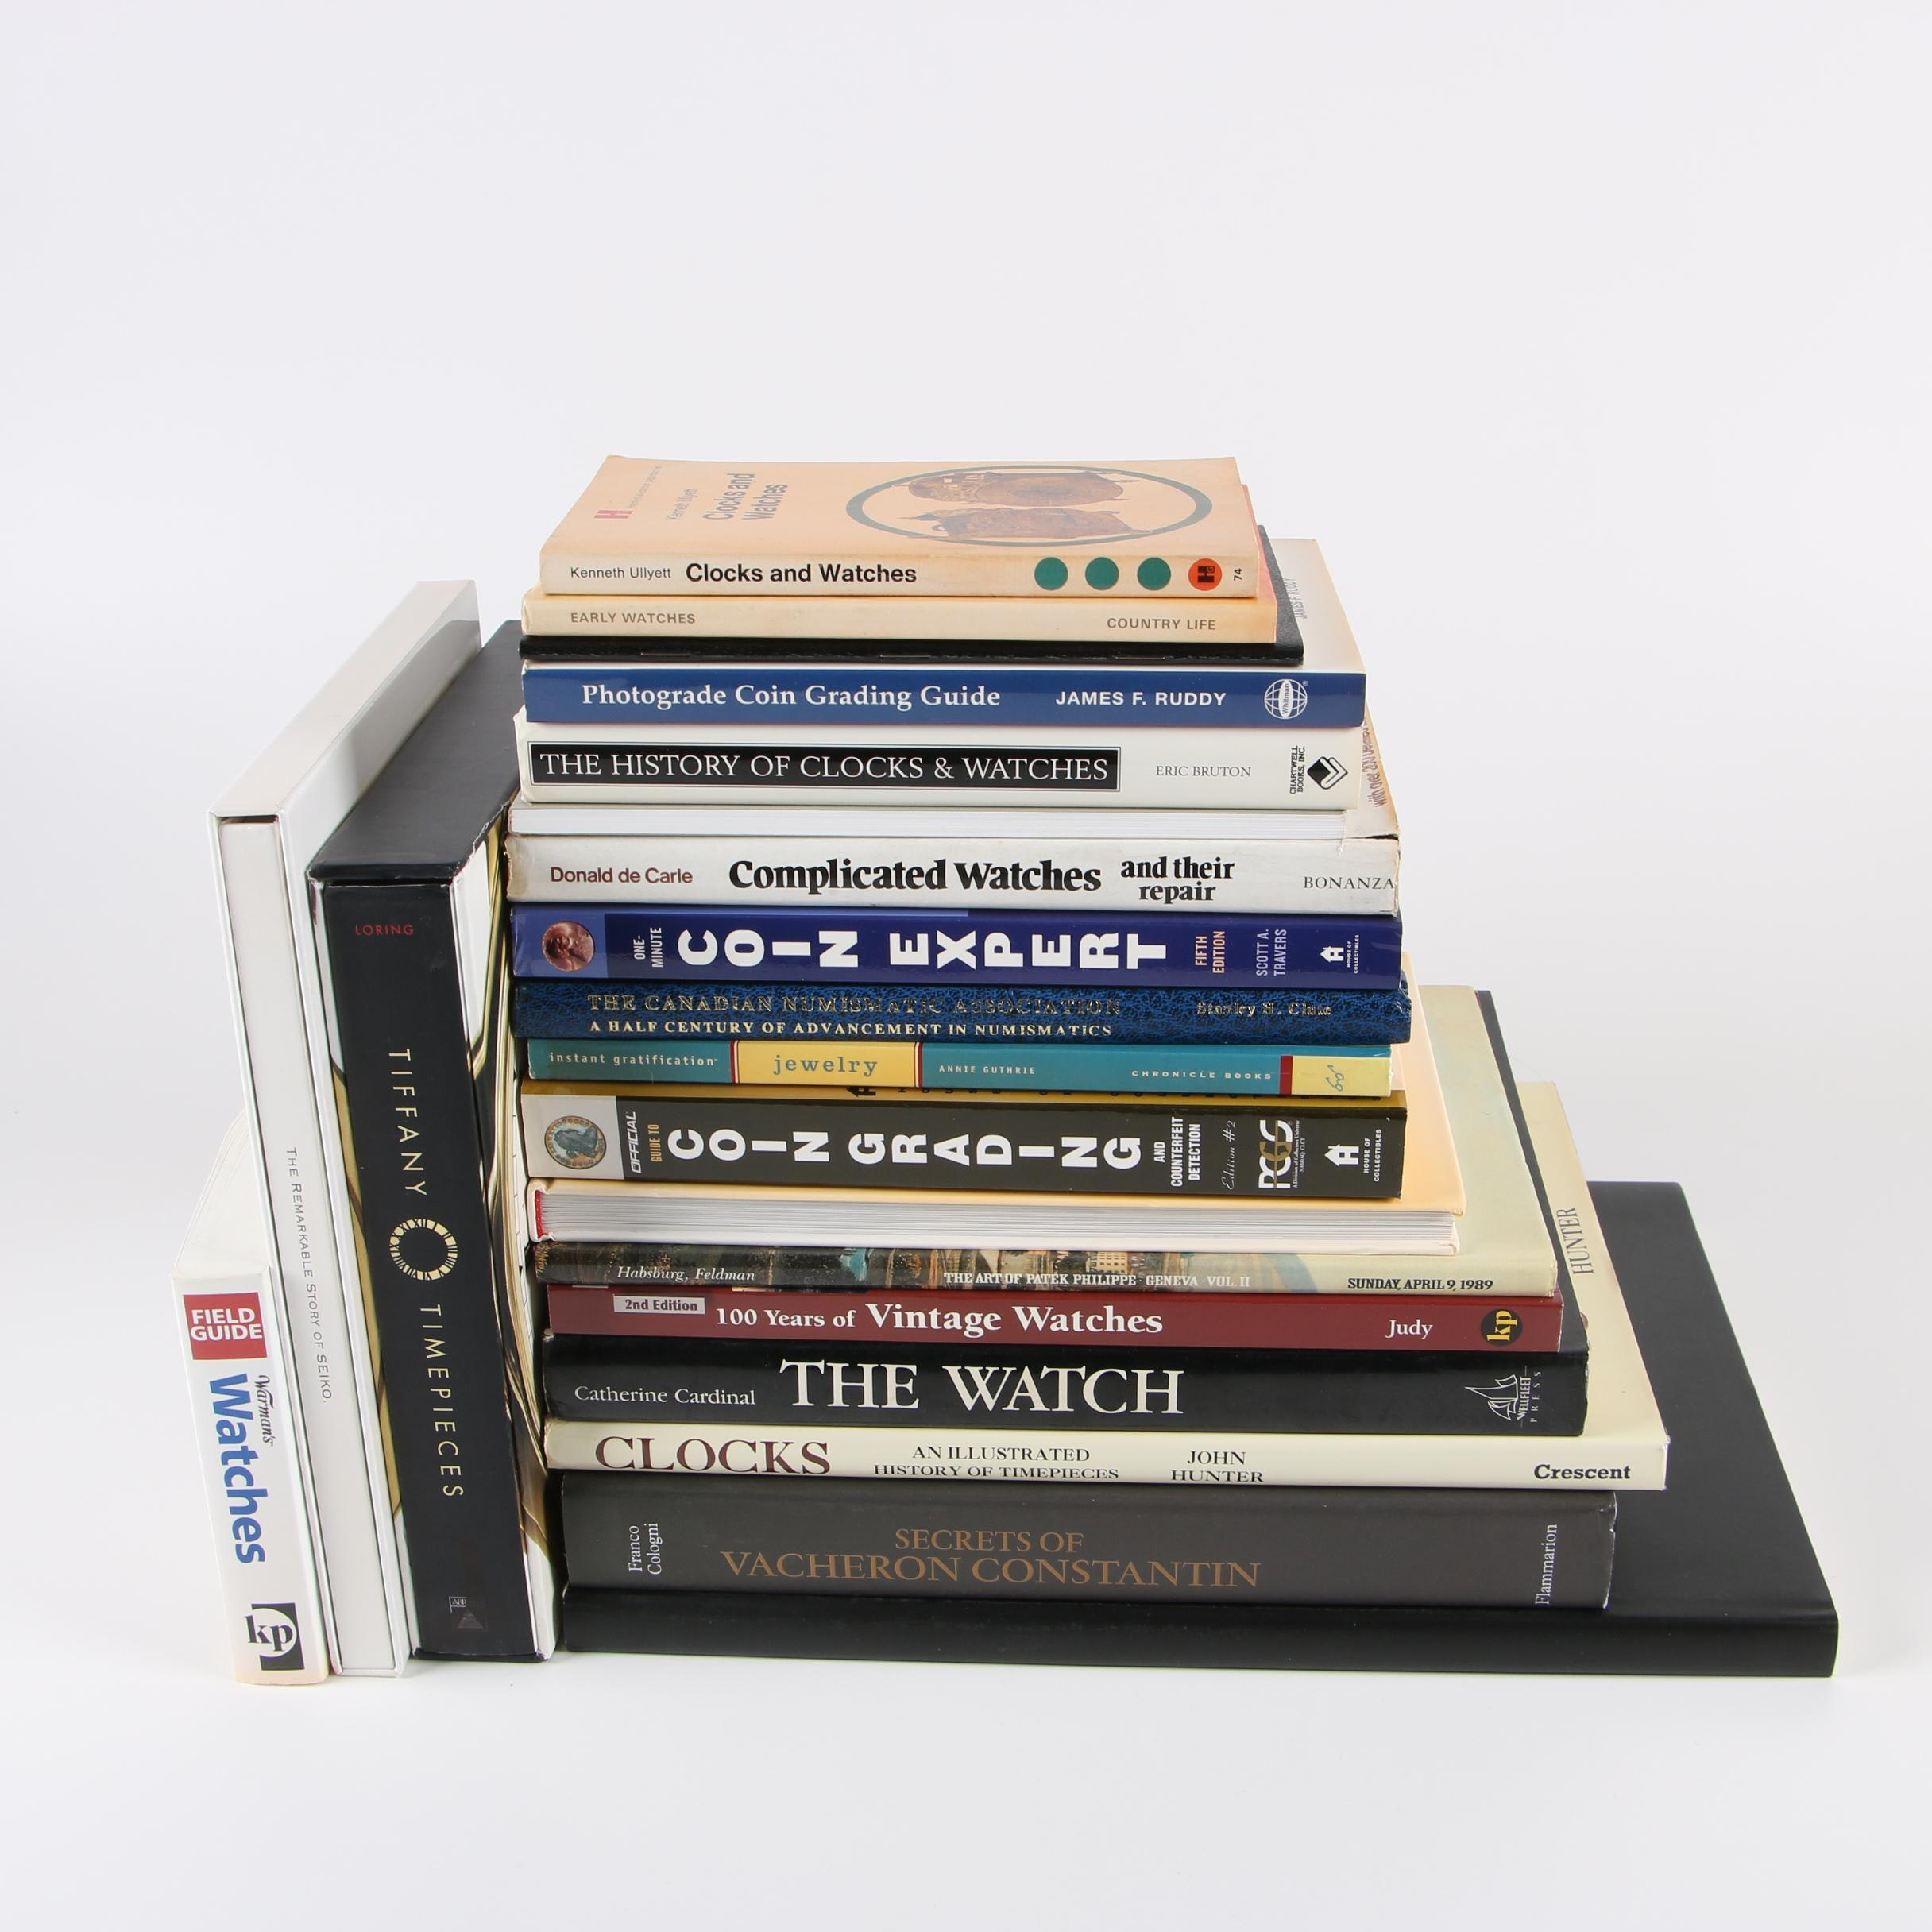 Books on Clocks, Watches, Coins, and Jewelry